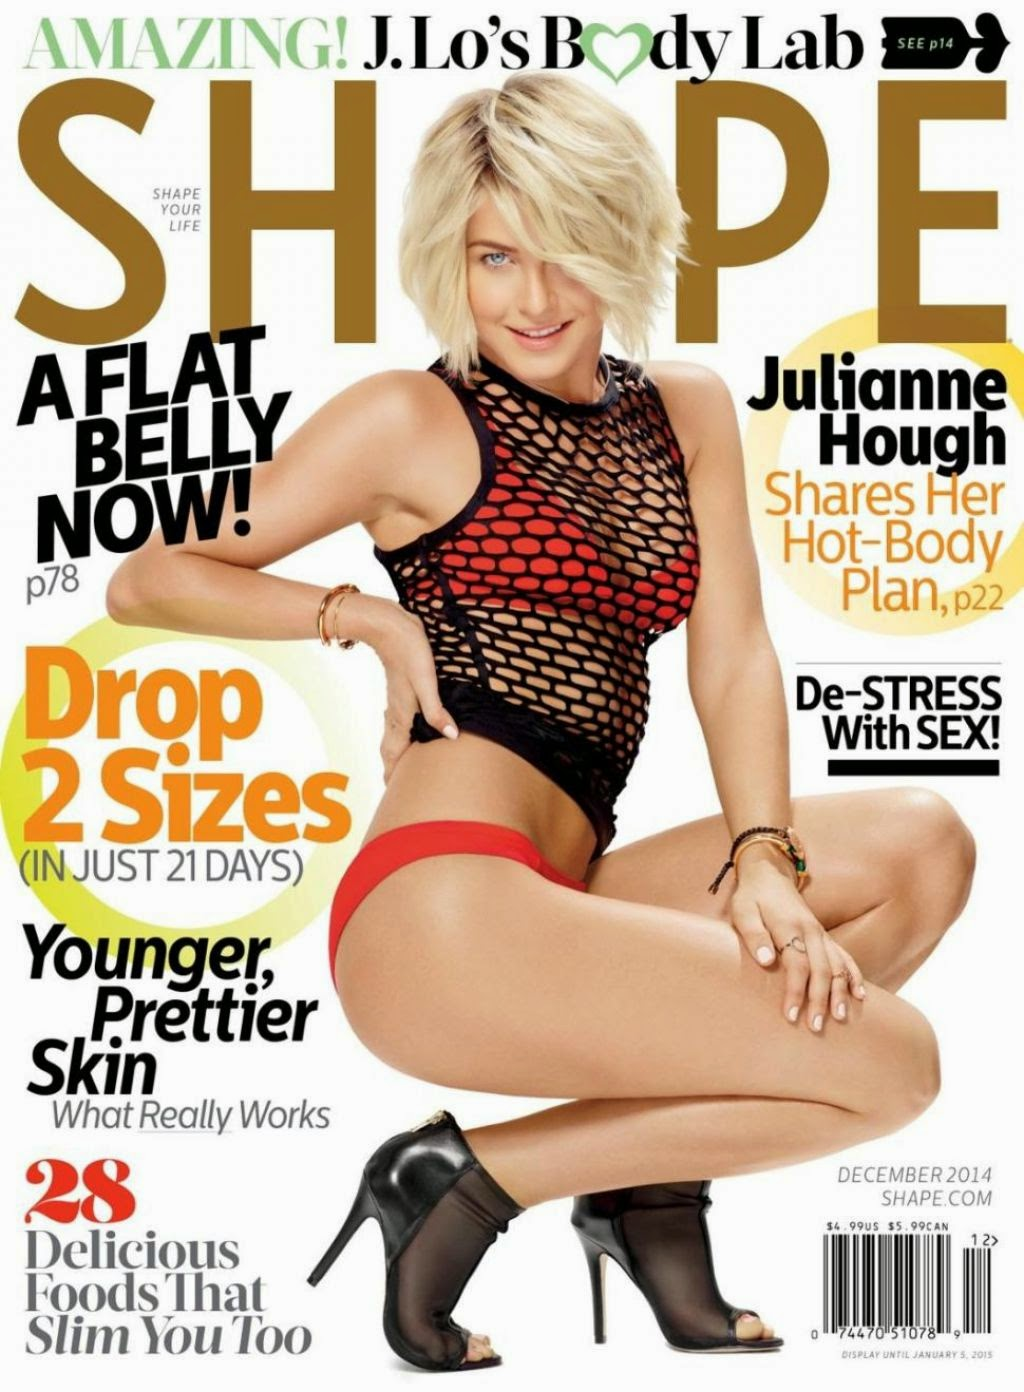 Julianne Hough covers Shape Magazine December 2014 in a red bikini